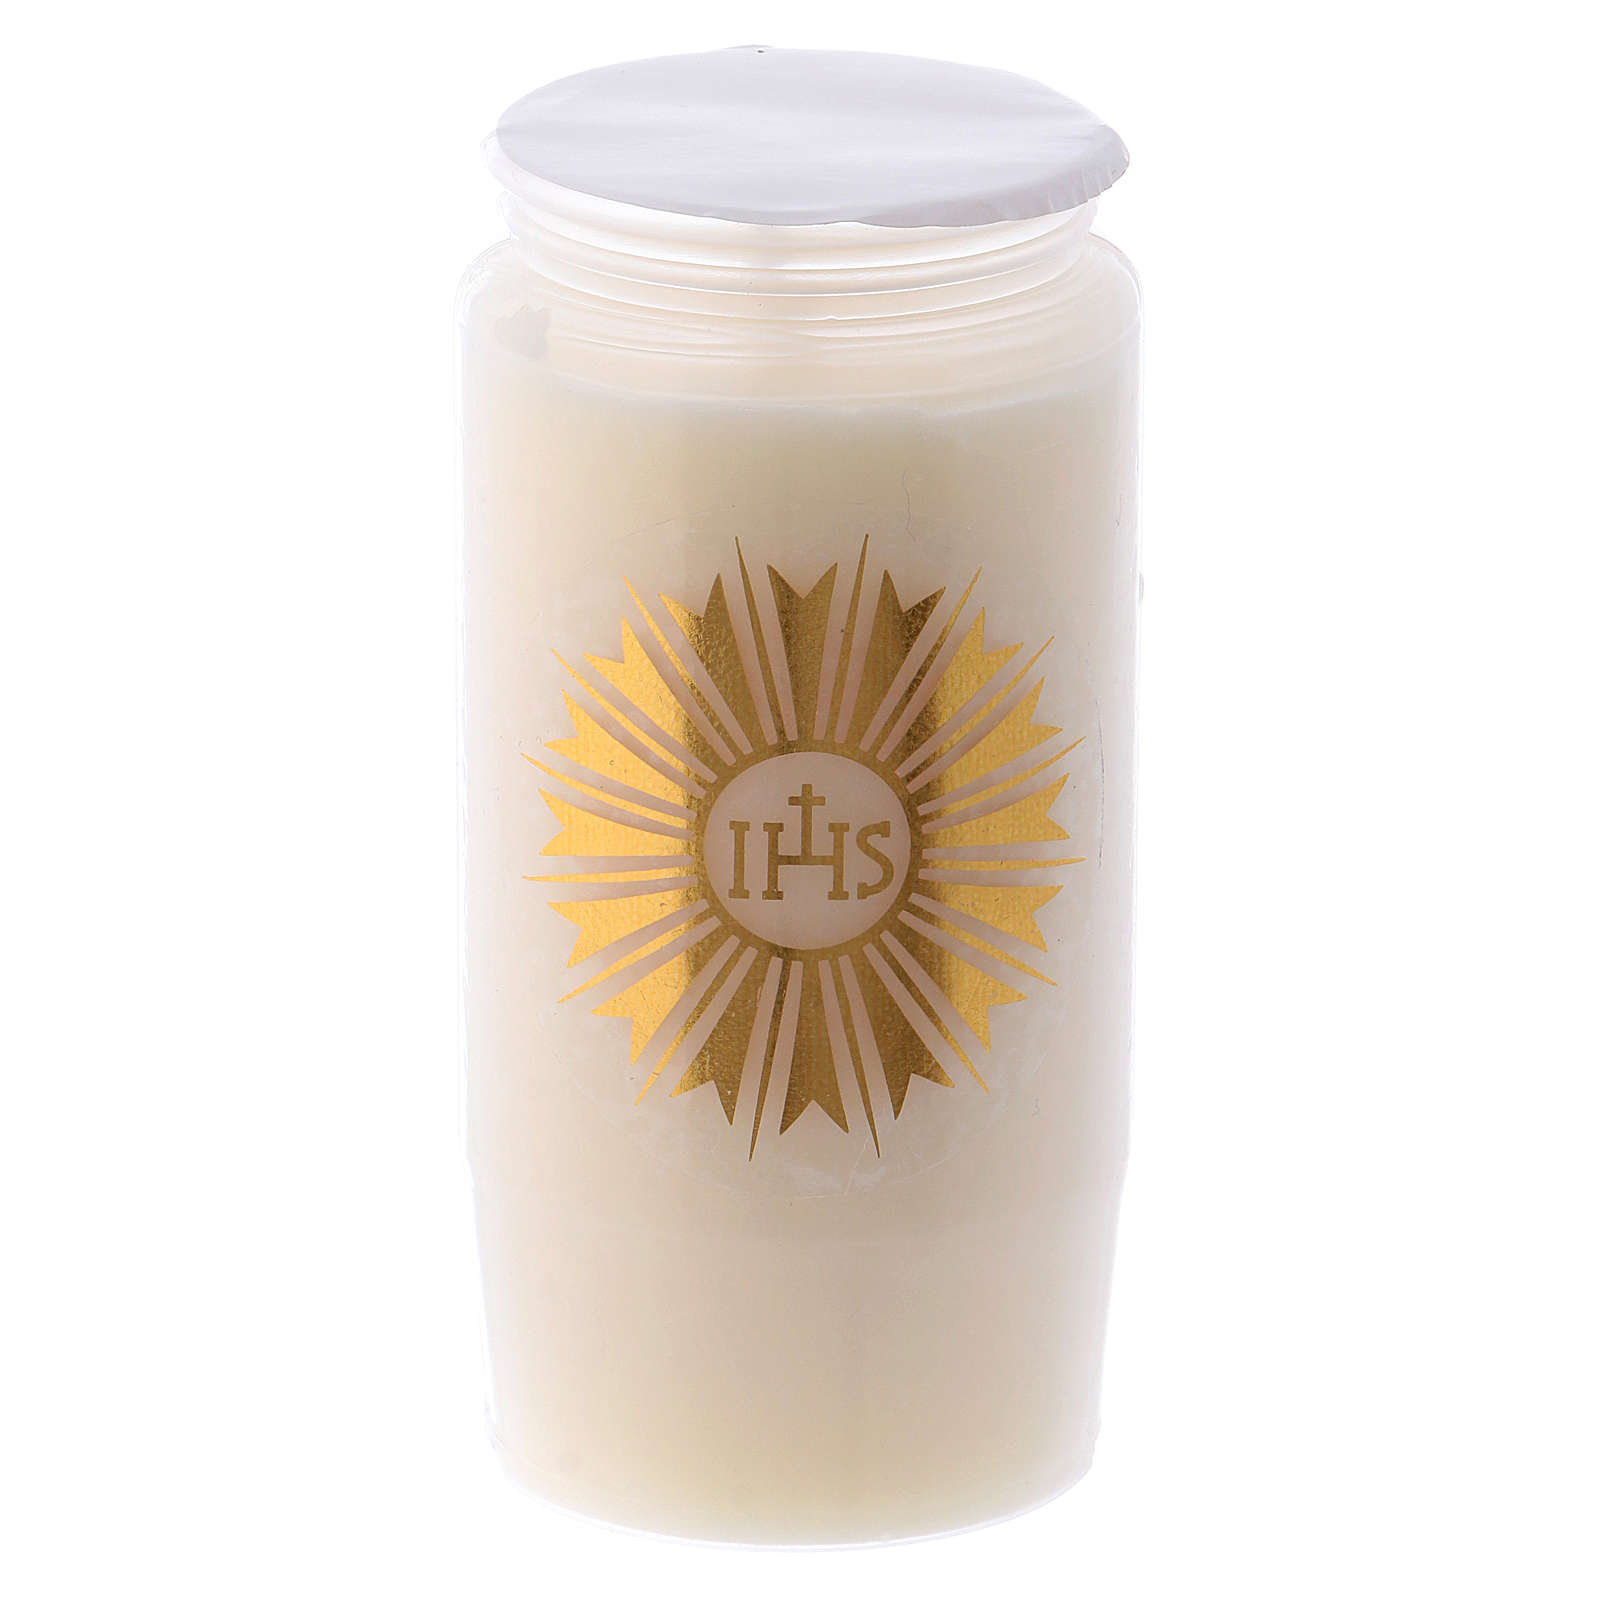 Sanctuary candle in white PVC with IHS - 2 days 3